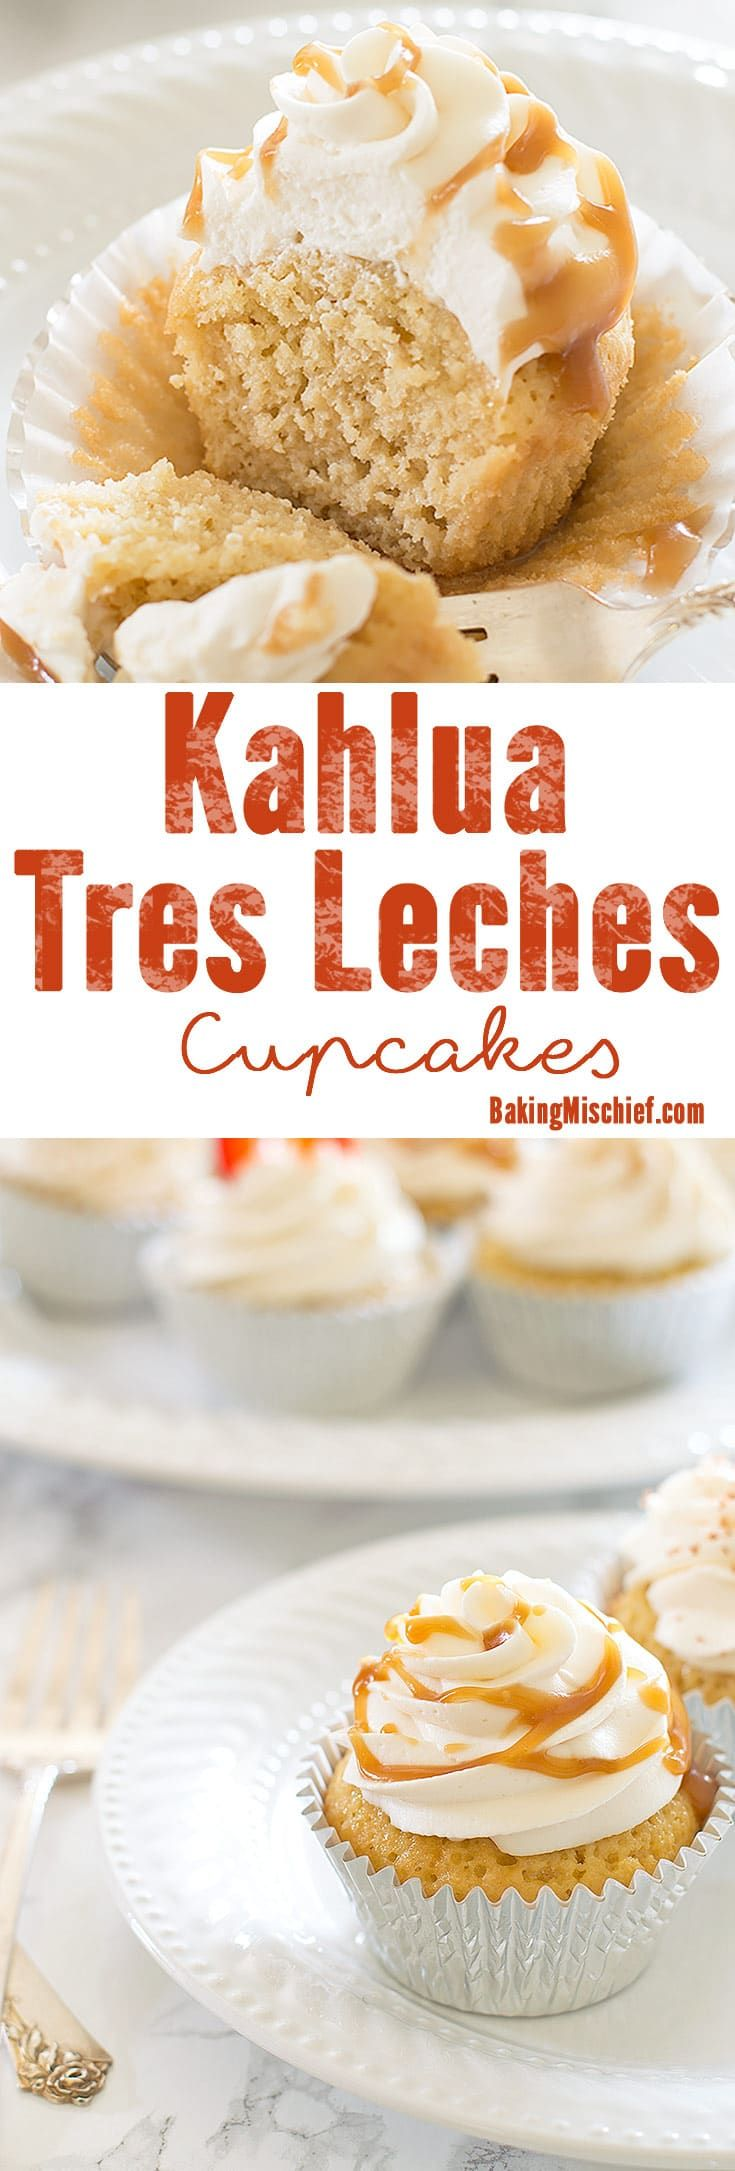 Classic Tres Leches cupcakes with a boozy Kahlua twist. An easy and delicious recipe just in time for Cinco de Mayo. Recipe includes nutritional information plus small-batch and non-alcoholic instructions. From BakingMischief.com